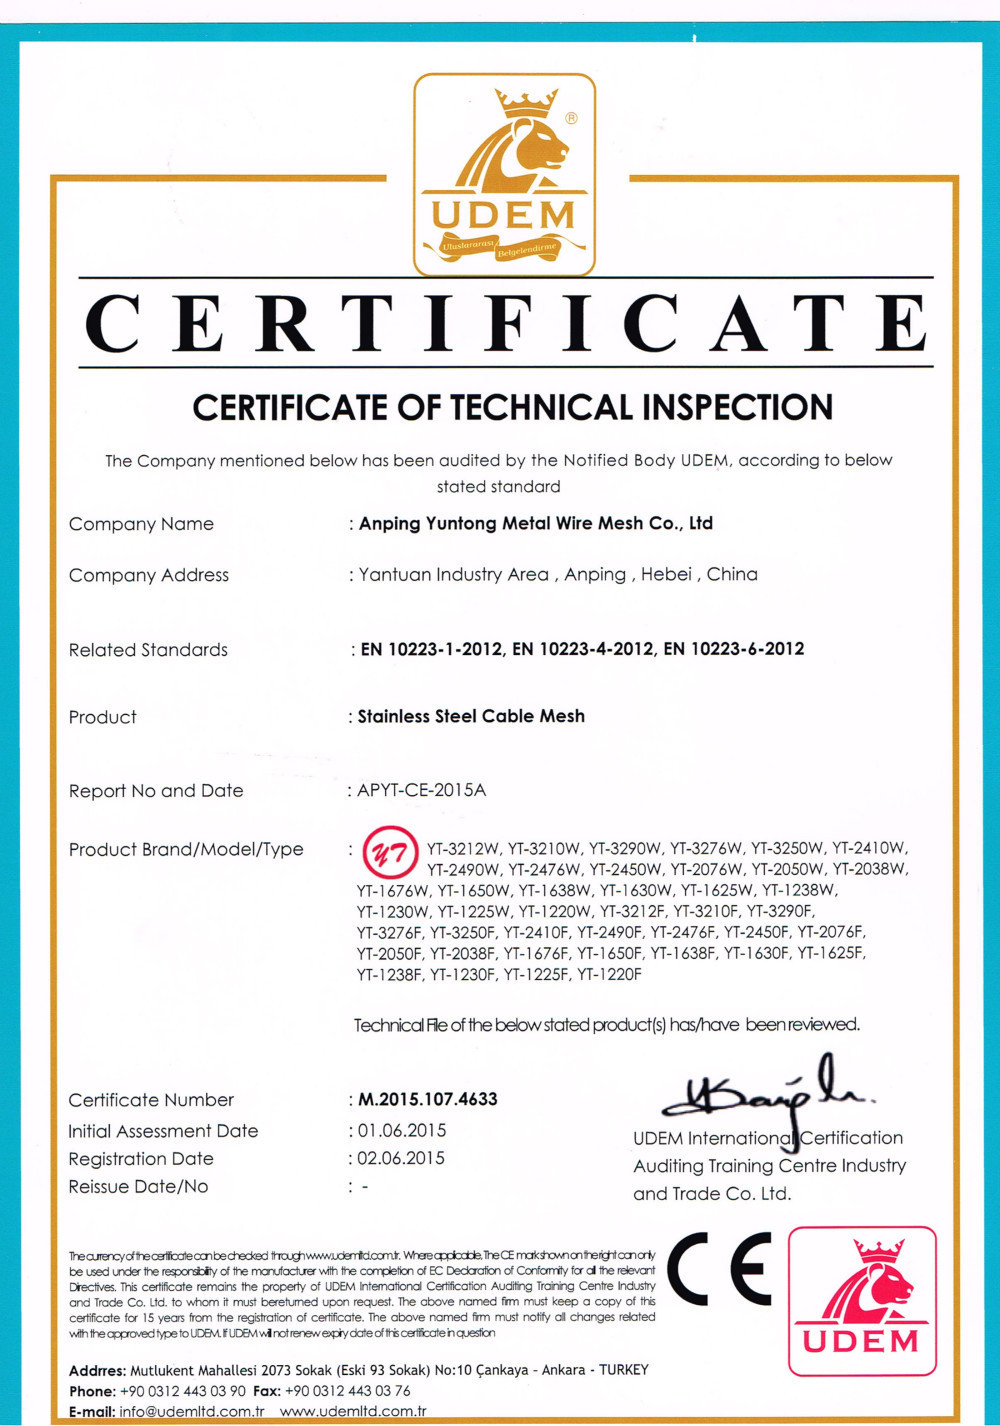 China Anping Yuntong Metal Mesh Co., Ltd. Certificaten